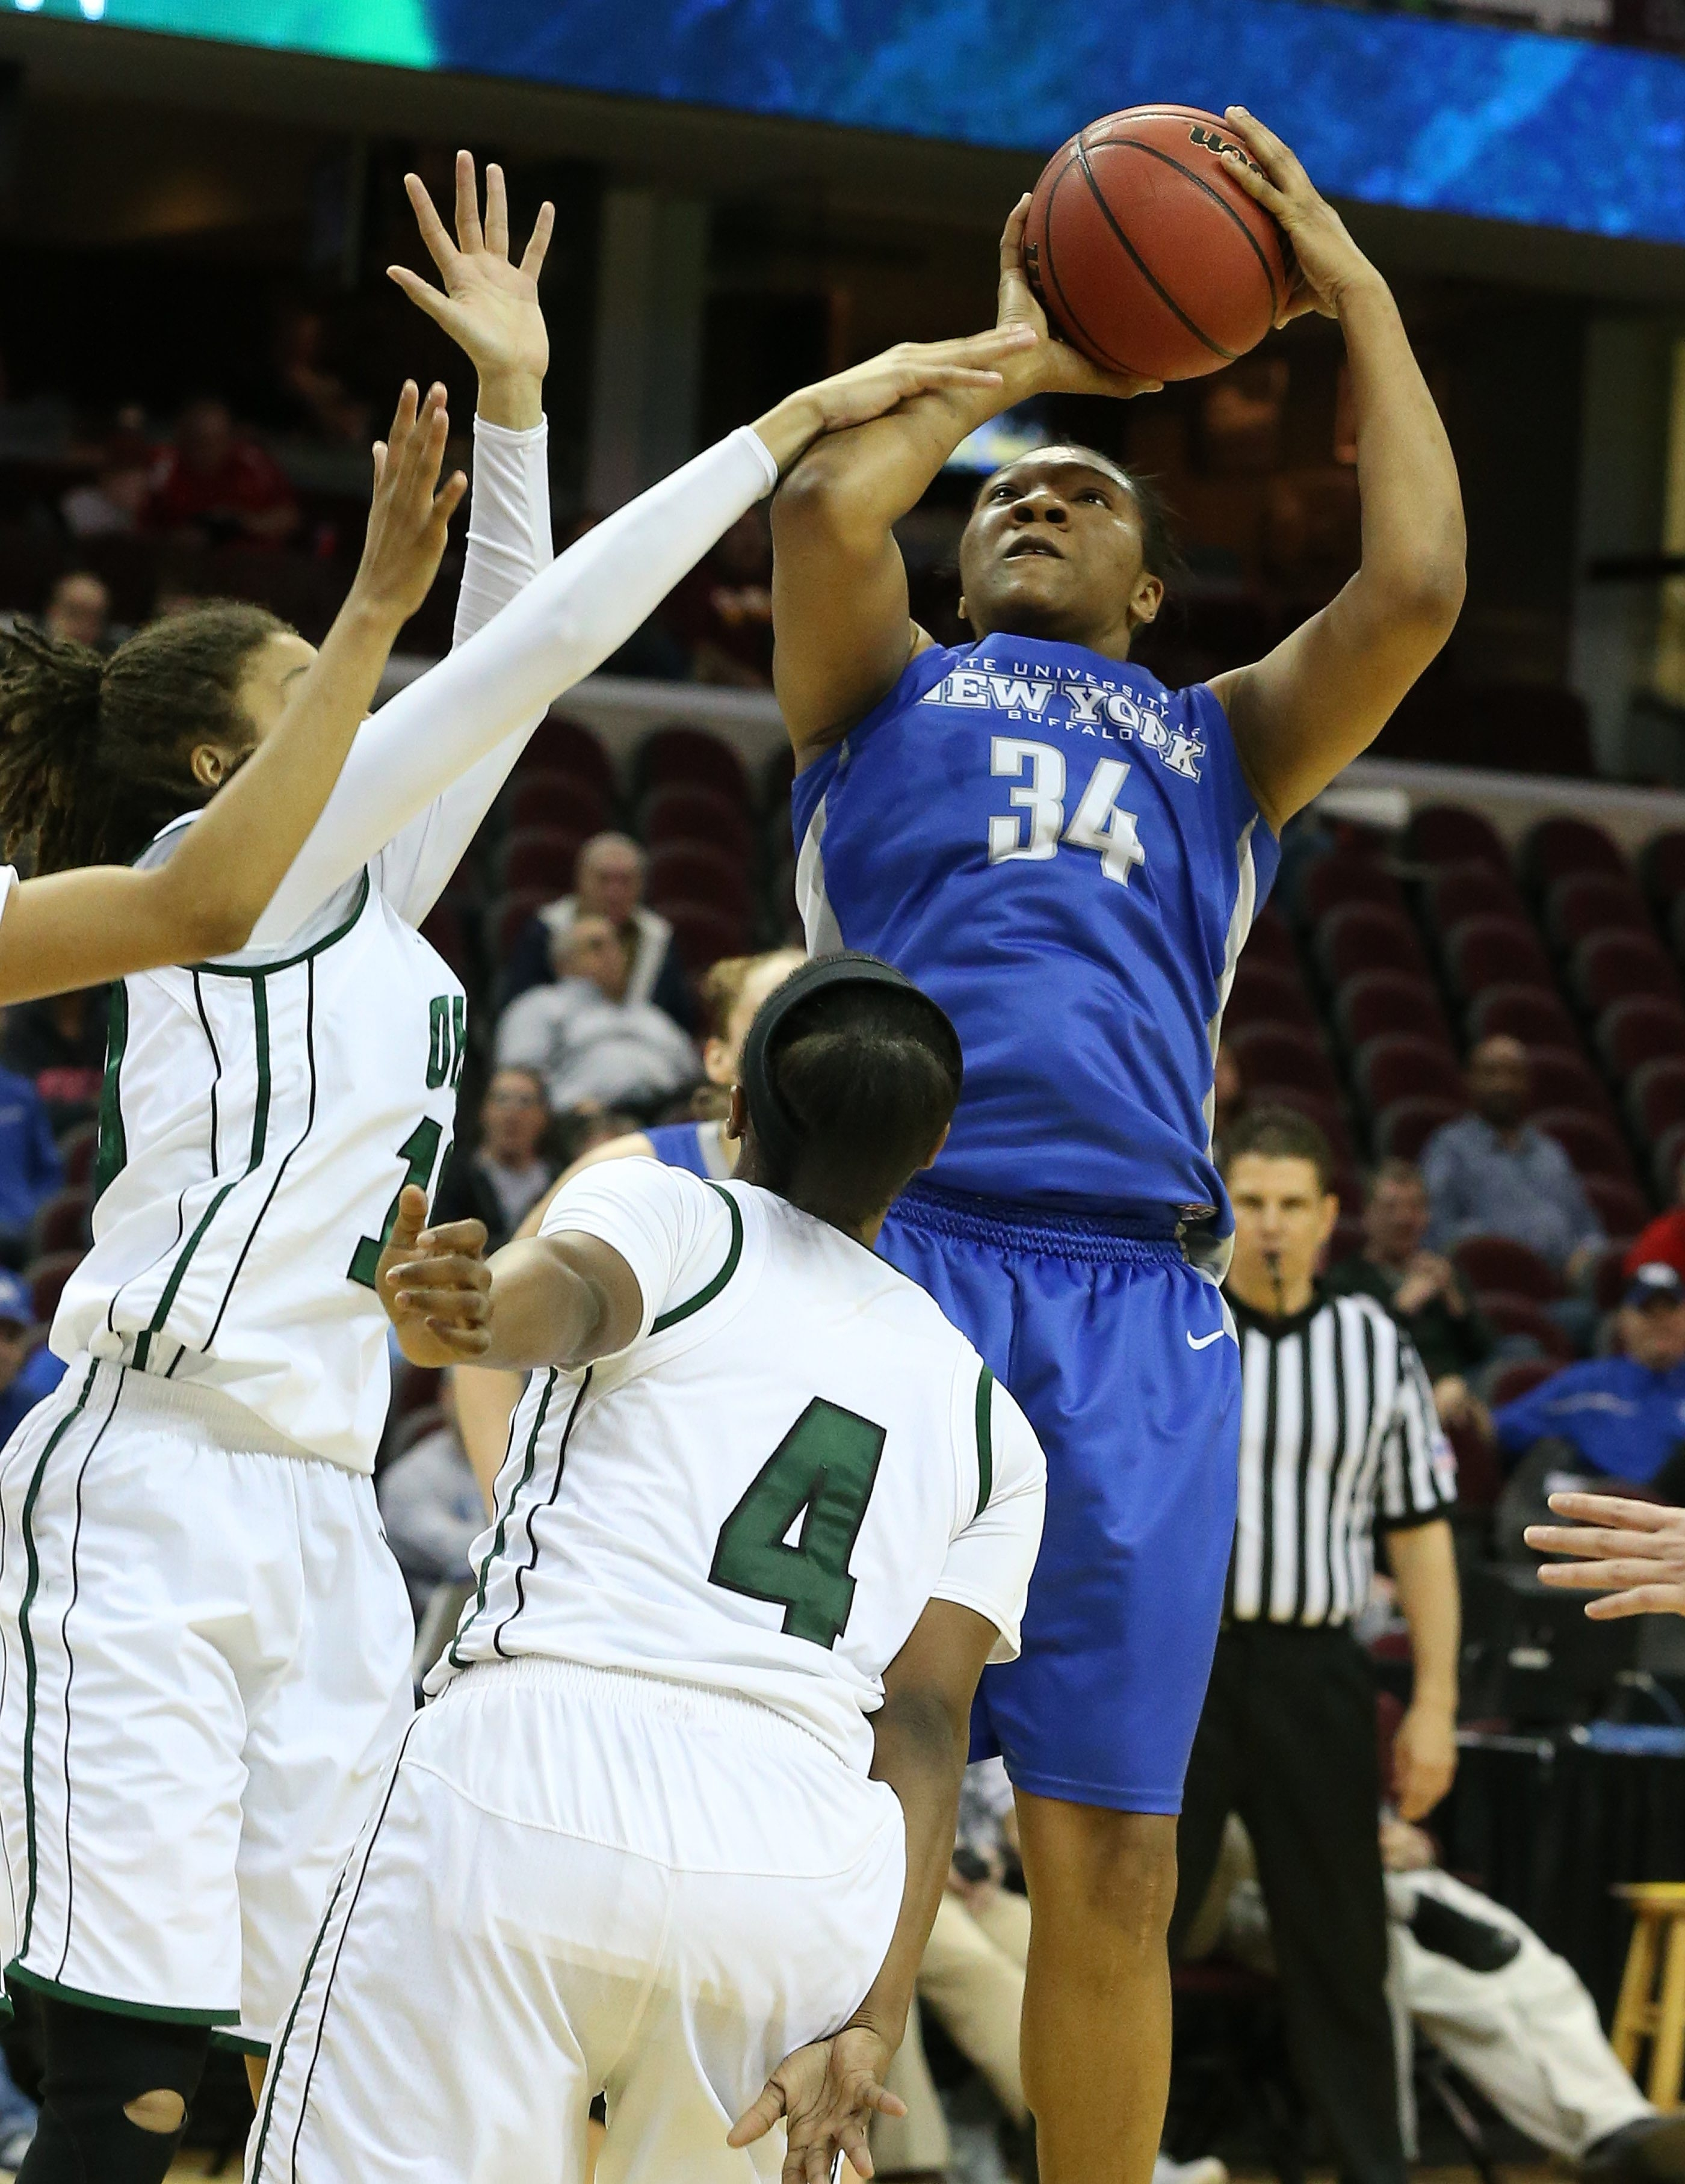 Alexus Malone (34) of UB scores over Ohio's Kiyanna Black in Friday's game at Quicken Loans Arena in Cleveland.